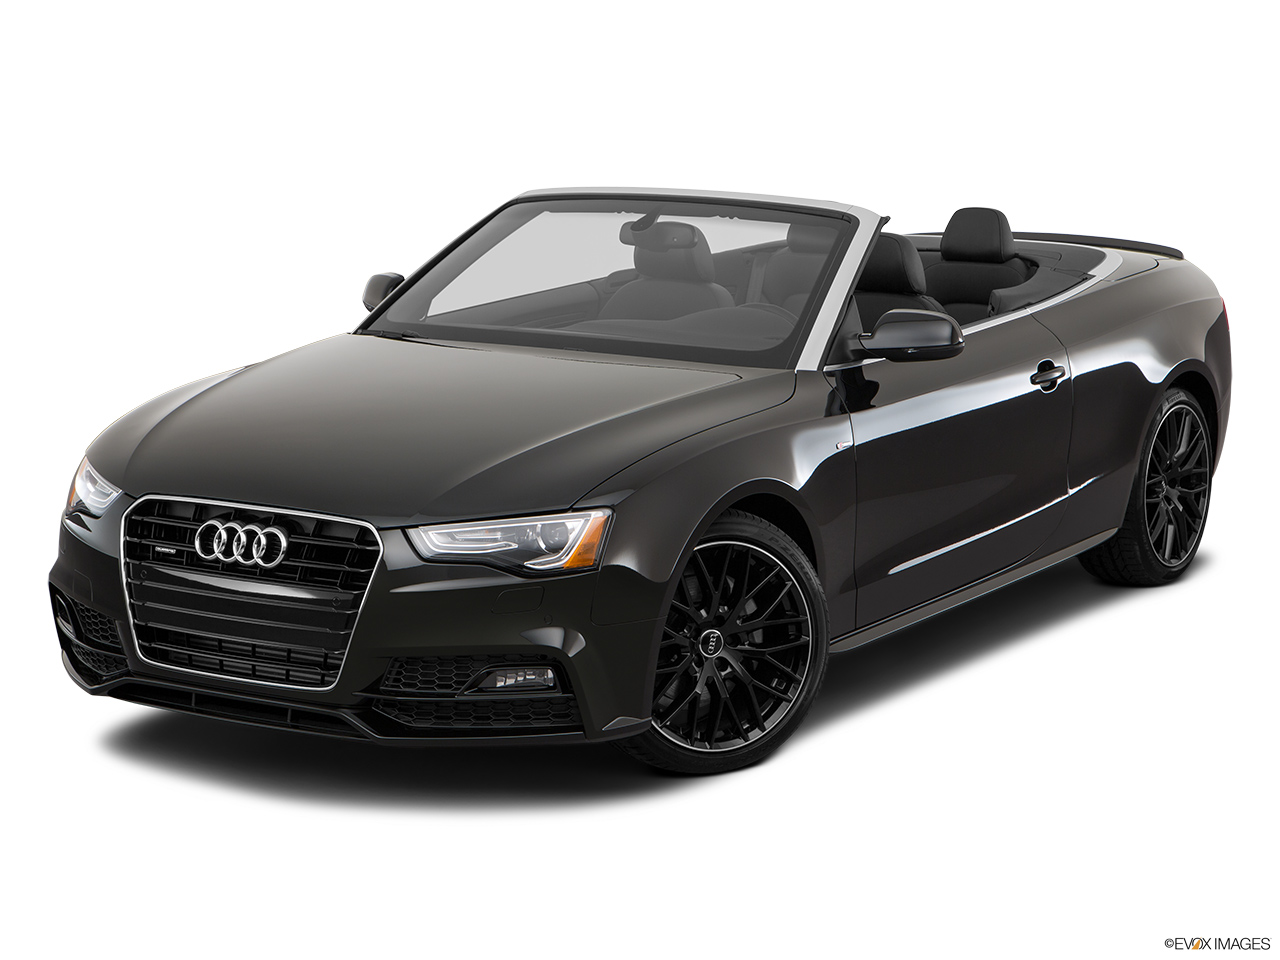 2017 Audi A5 Sport Cabriolet 2.0 TFSI Front angle view.